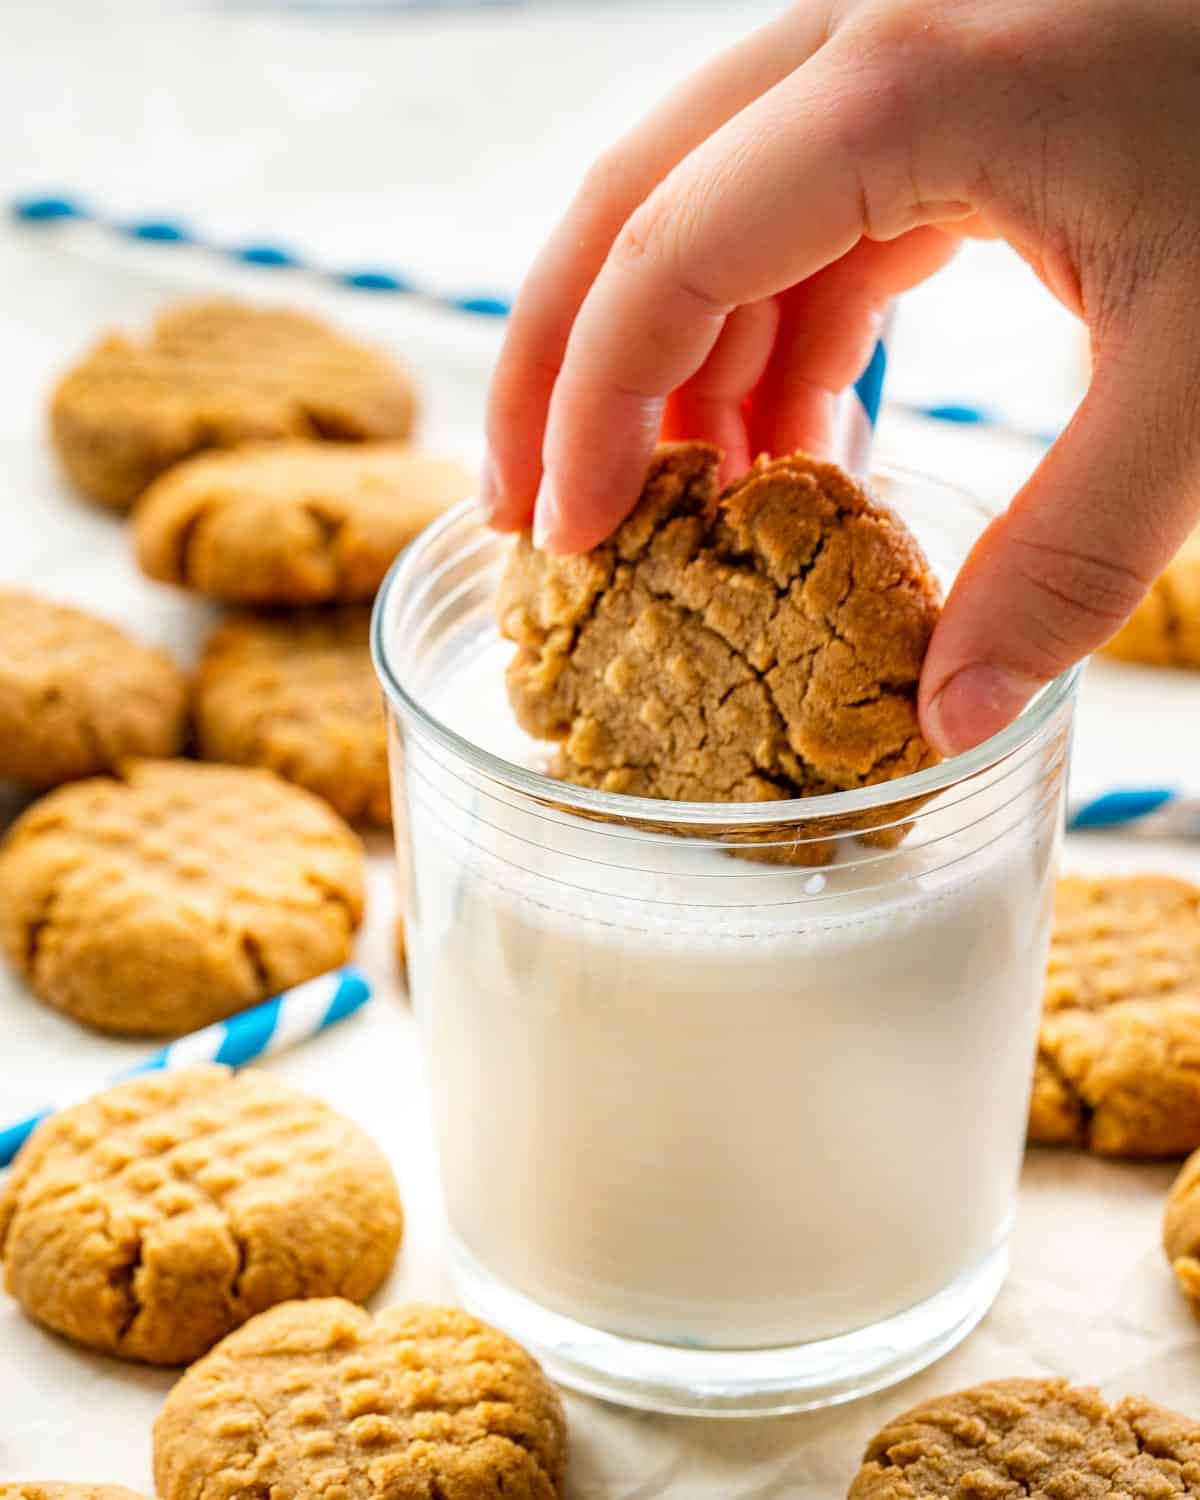 a hand dunking a peanut butter cookie in a glass of cold milk.